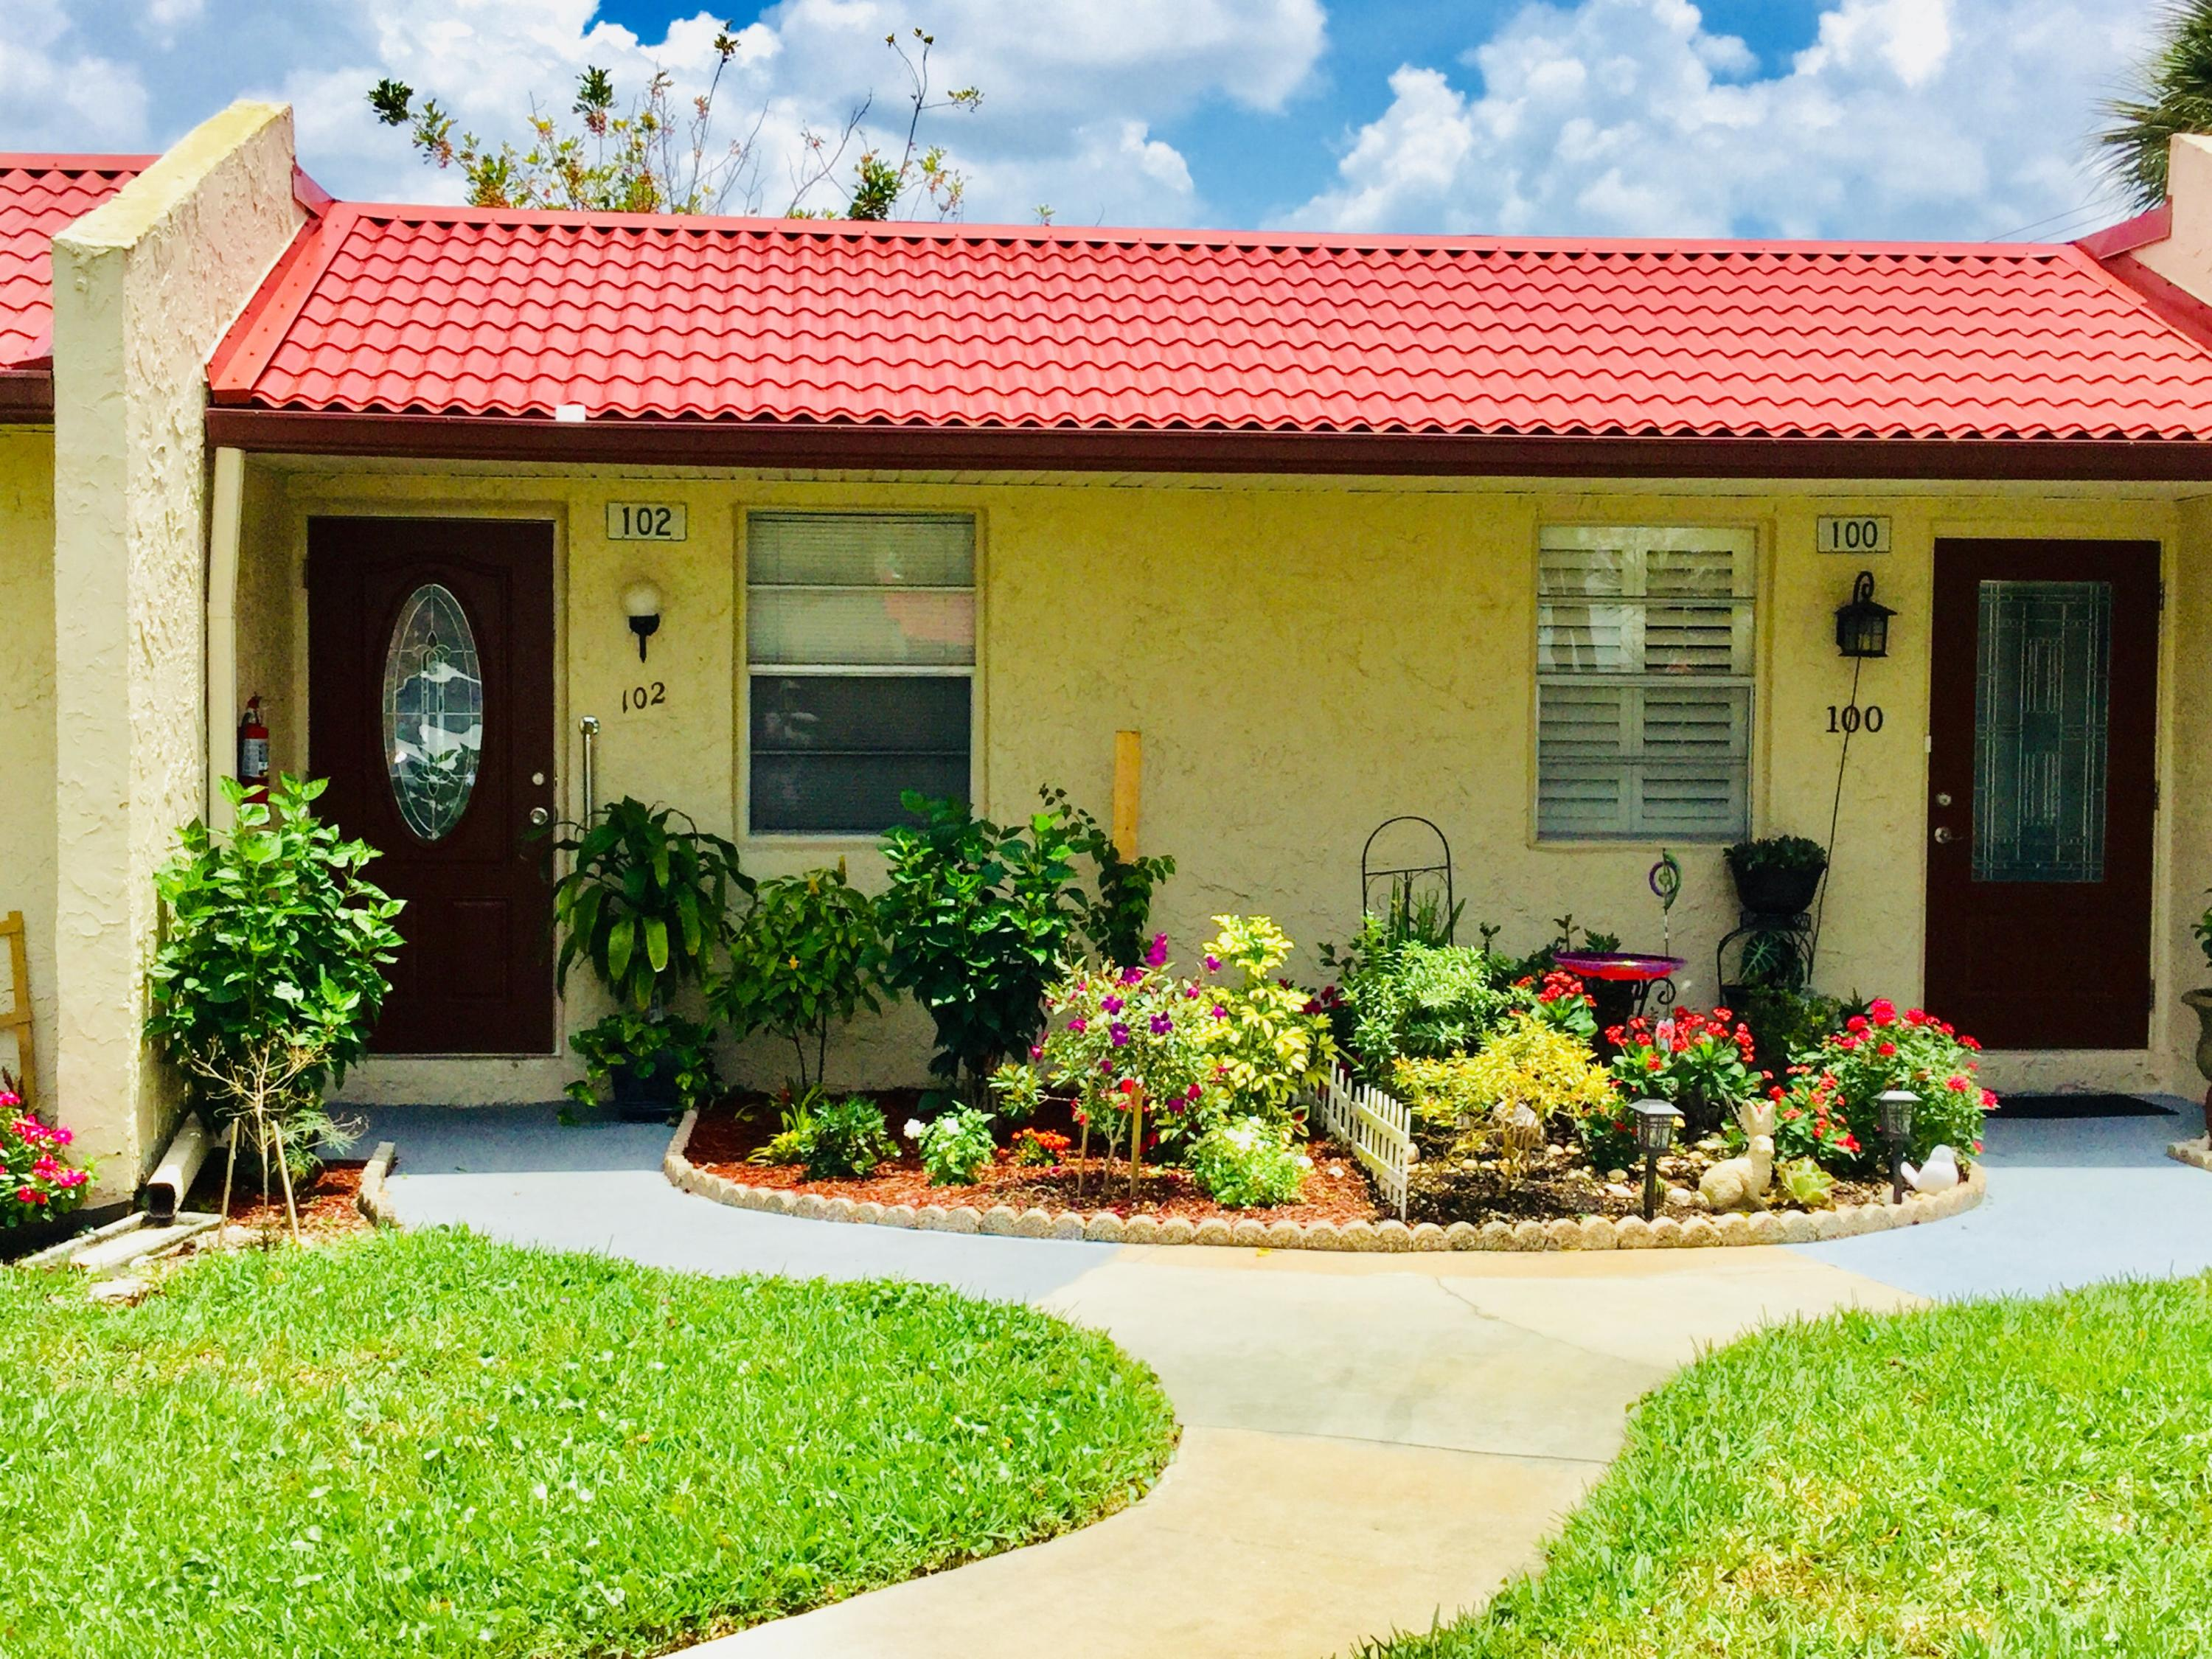 102 Lake Irene Drive, West Palm Beach, Florida 33411, 2 Bedrooms Bedrooms, ,2 BathroomsBathrooms,Rental,For Rent,Lake Irene,RX-10532827